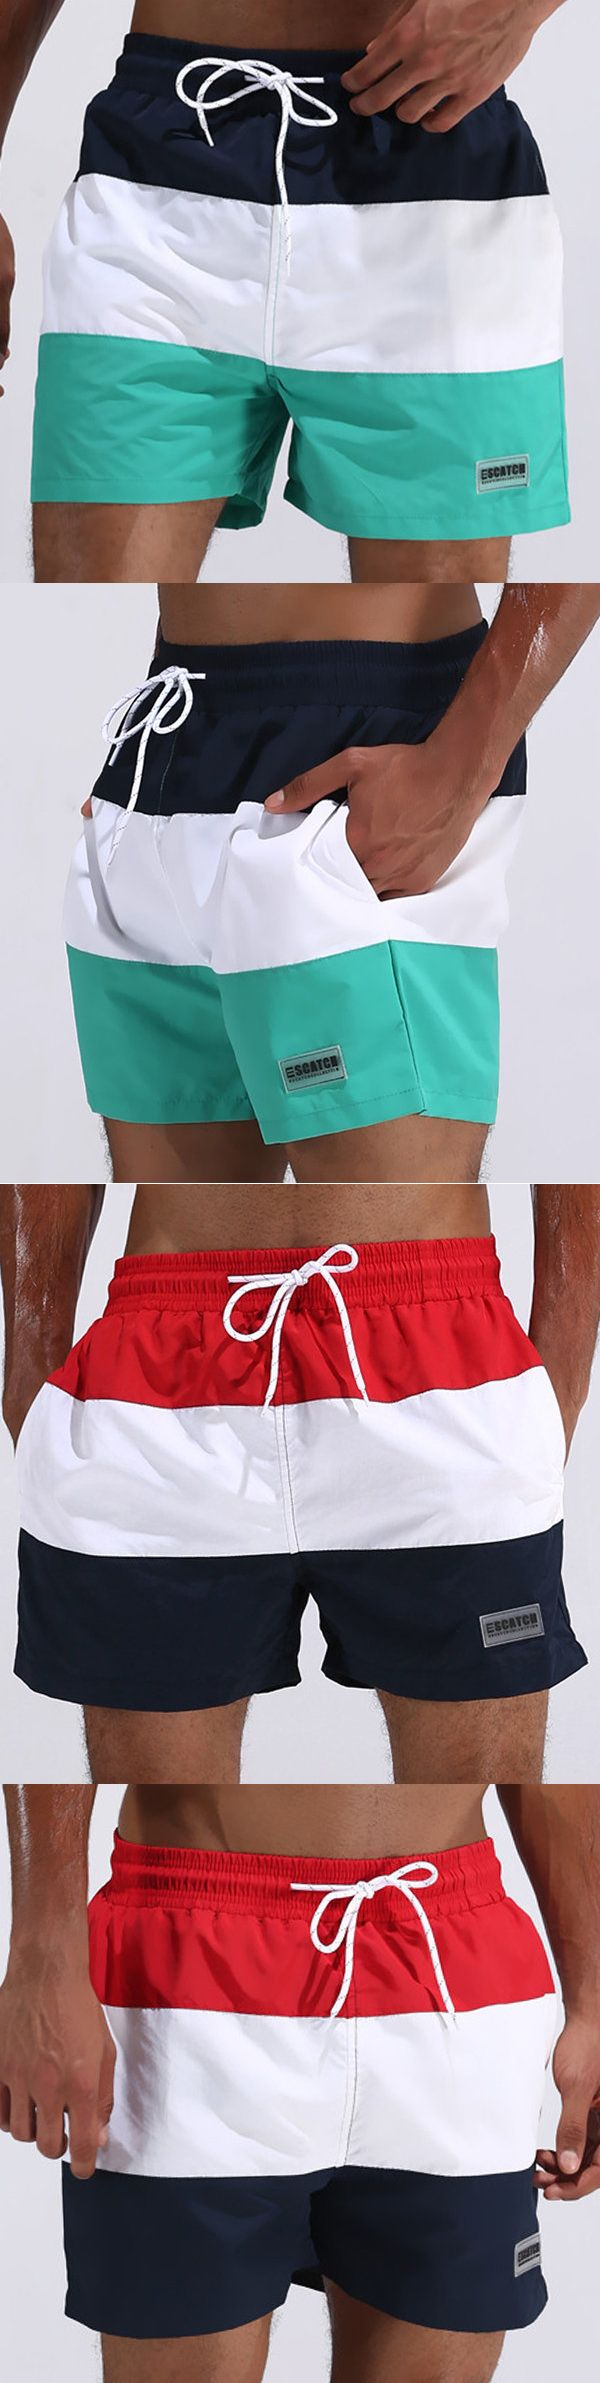 ESCATCH Outdoor Loose Pockets Stripes Breathable Swimwear Beach Shorts for Men